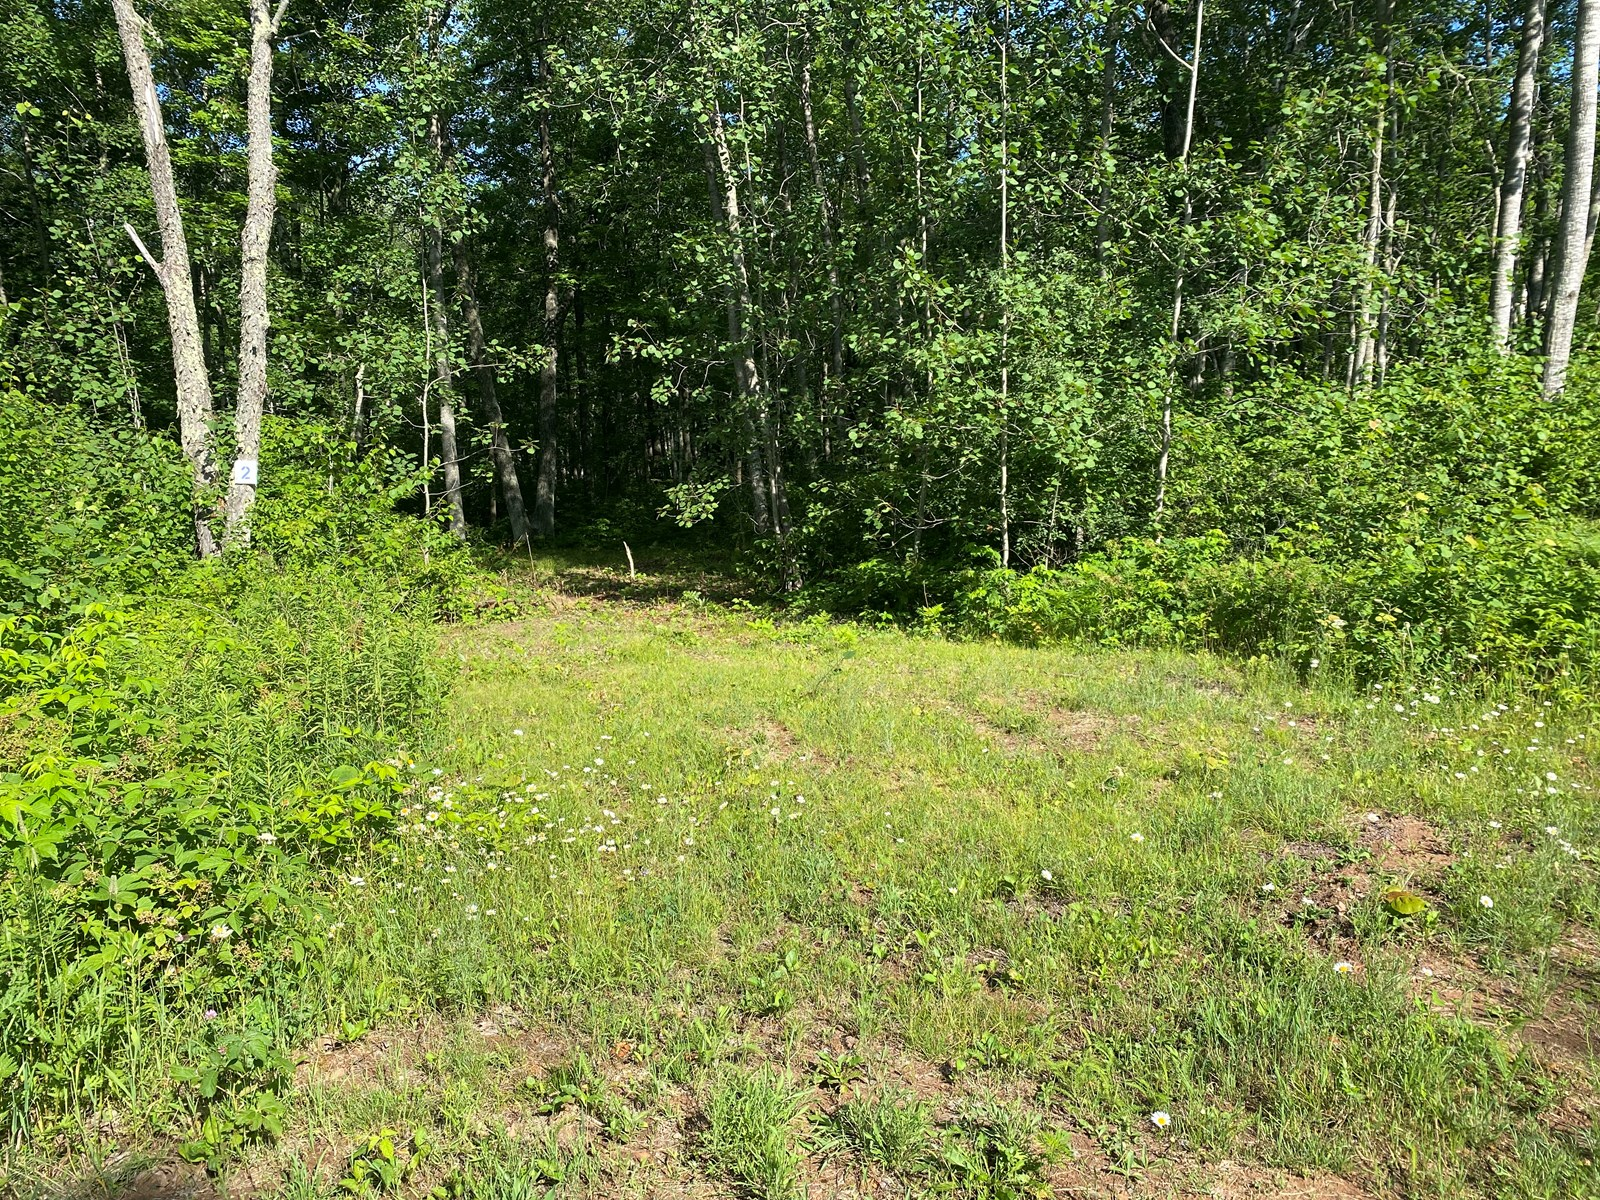 Ready-To-Build 1.8 Acre Lot For Sale In Sandstone MN